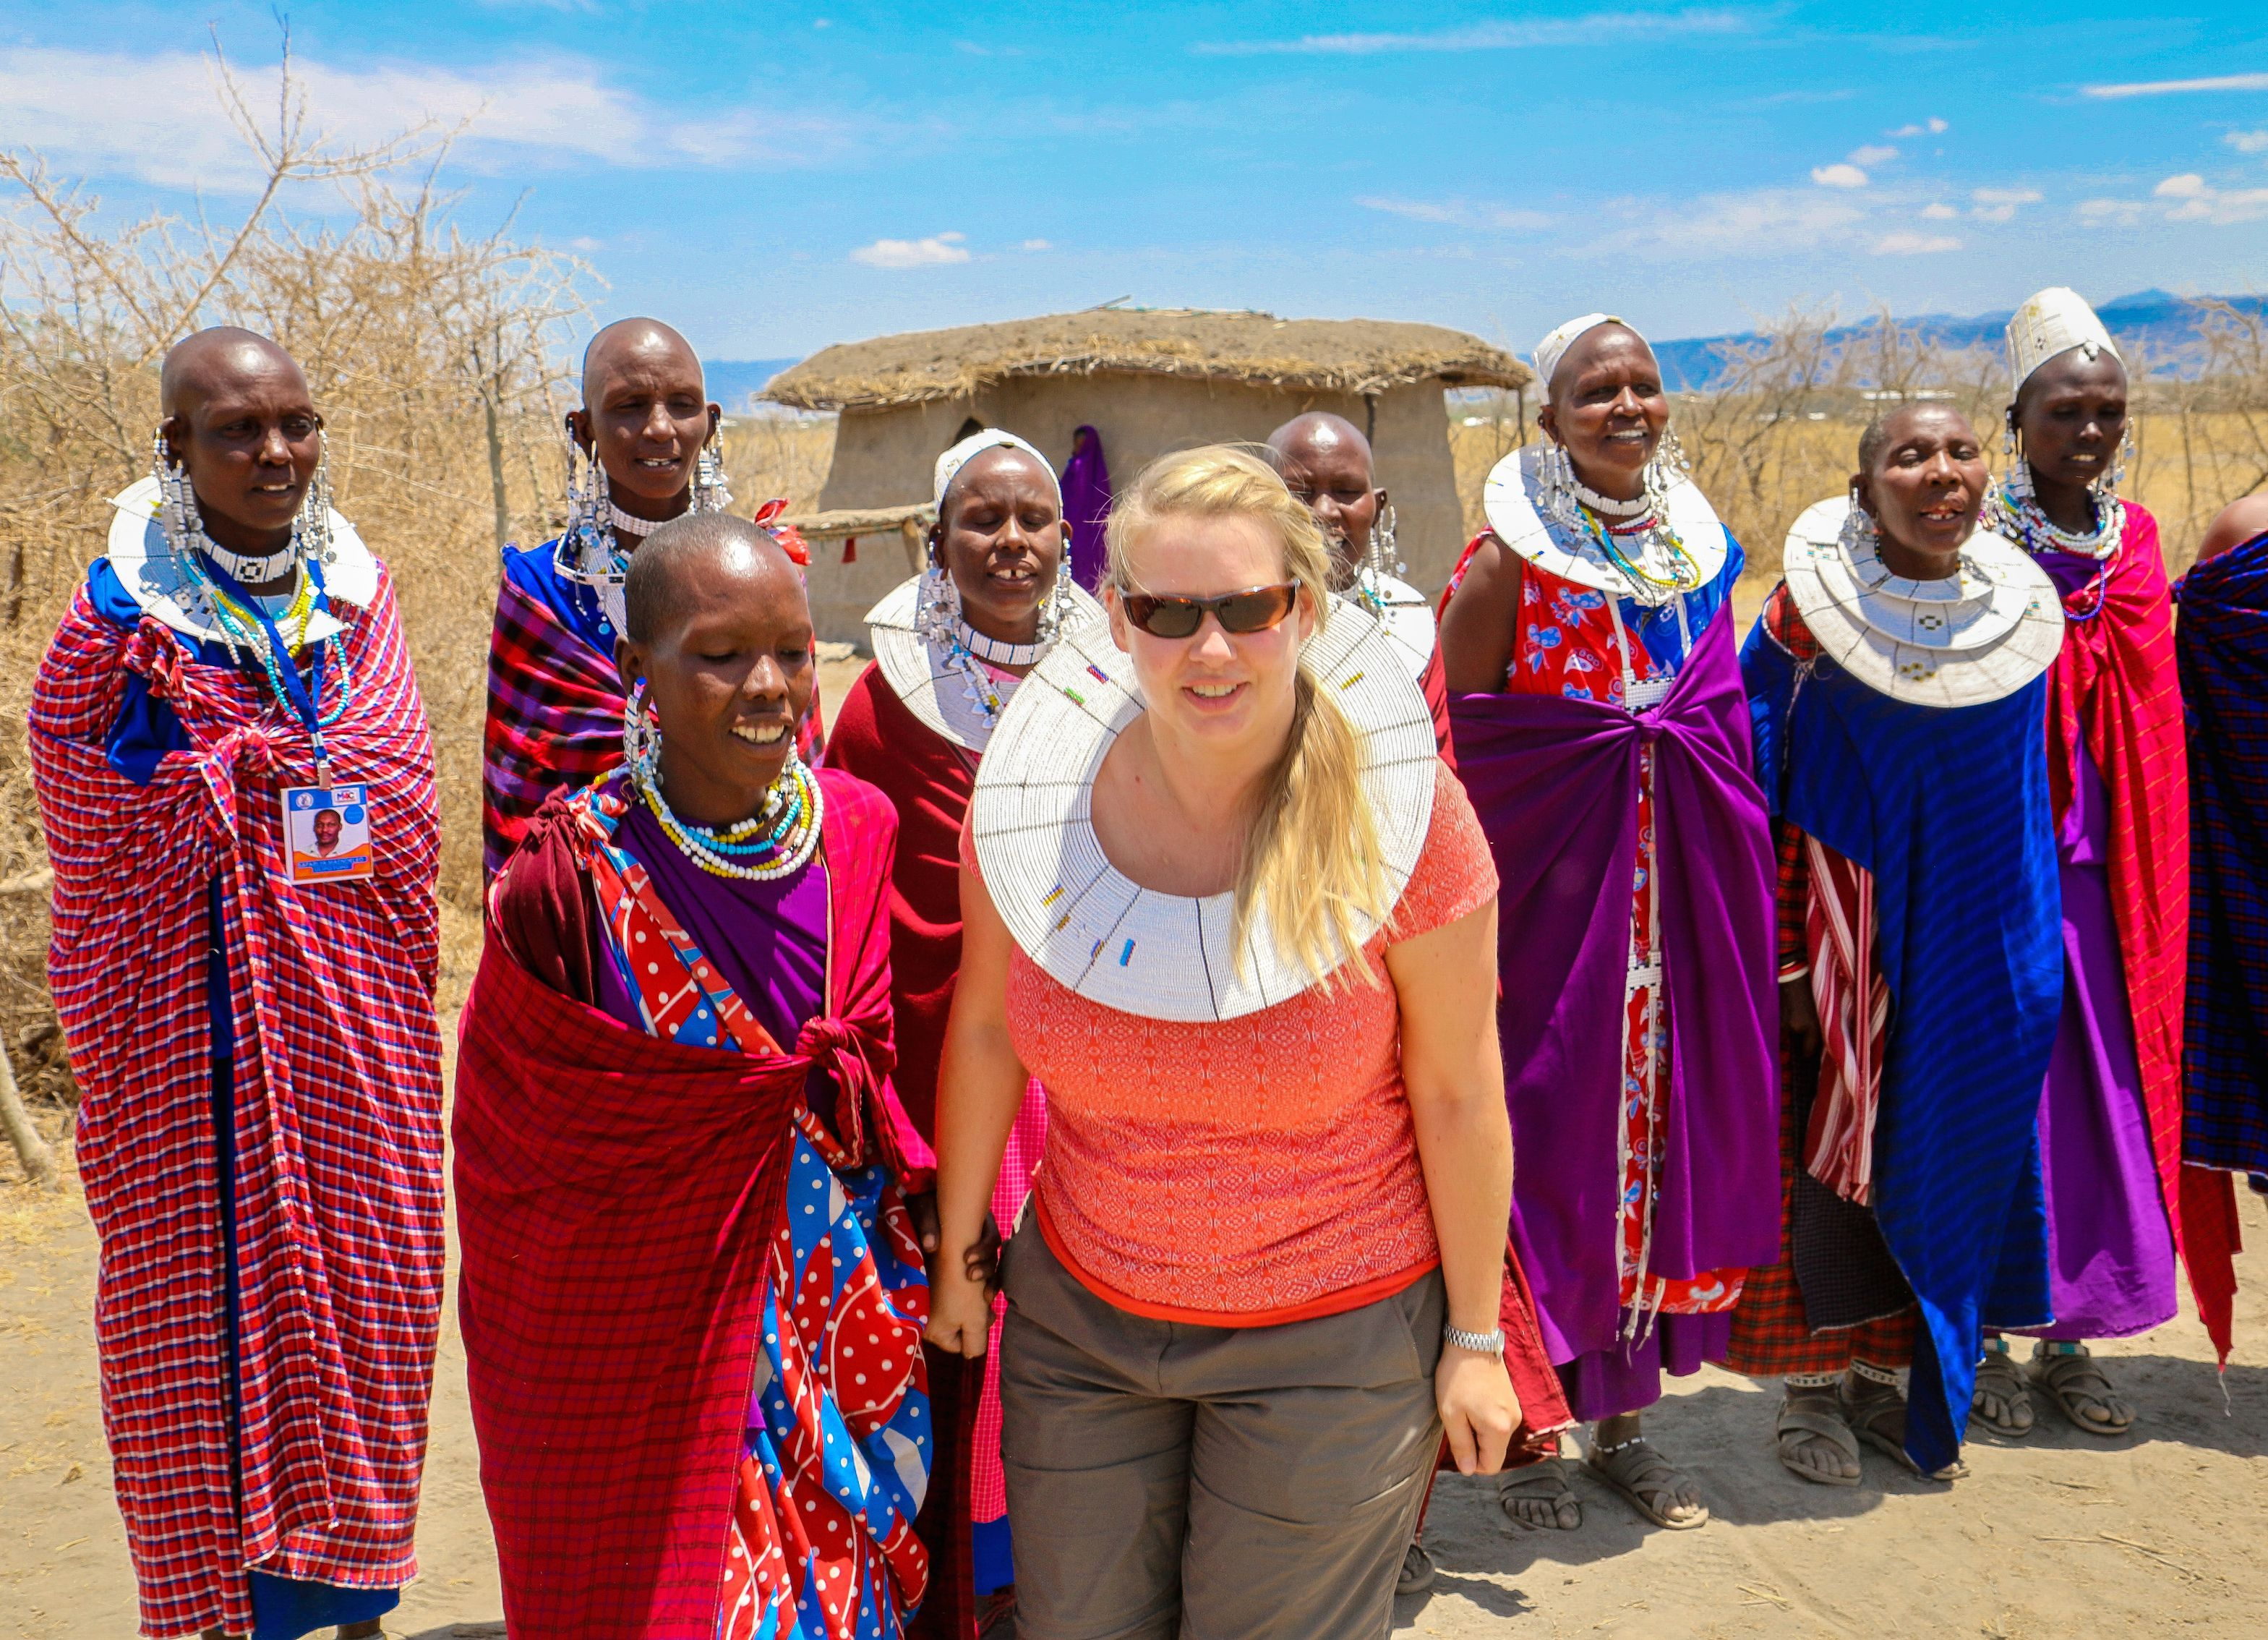 Mix and mingle with tribes people of #MaasaiCulturalVillage (manyatta) and take pleasure with the 300 yrs older cultural dance, customs and traditions. http://safaridmc.com/maasai-cultural-village/